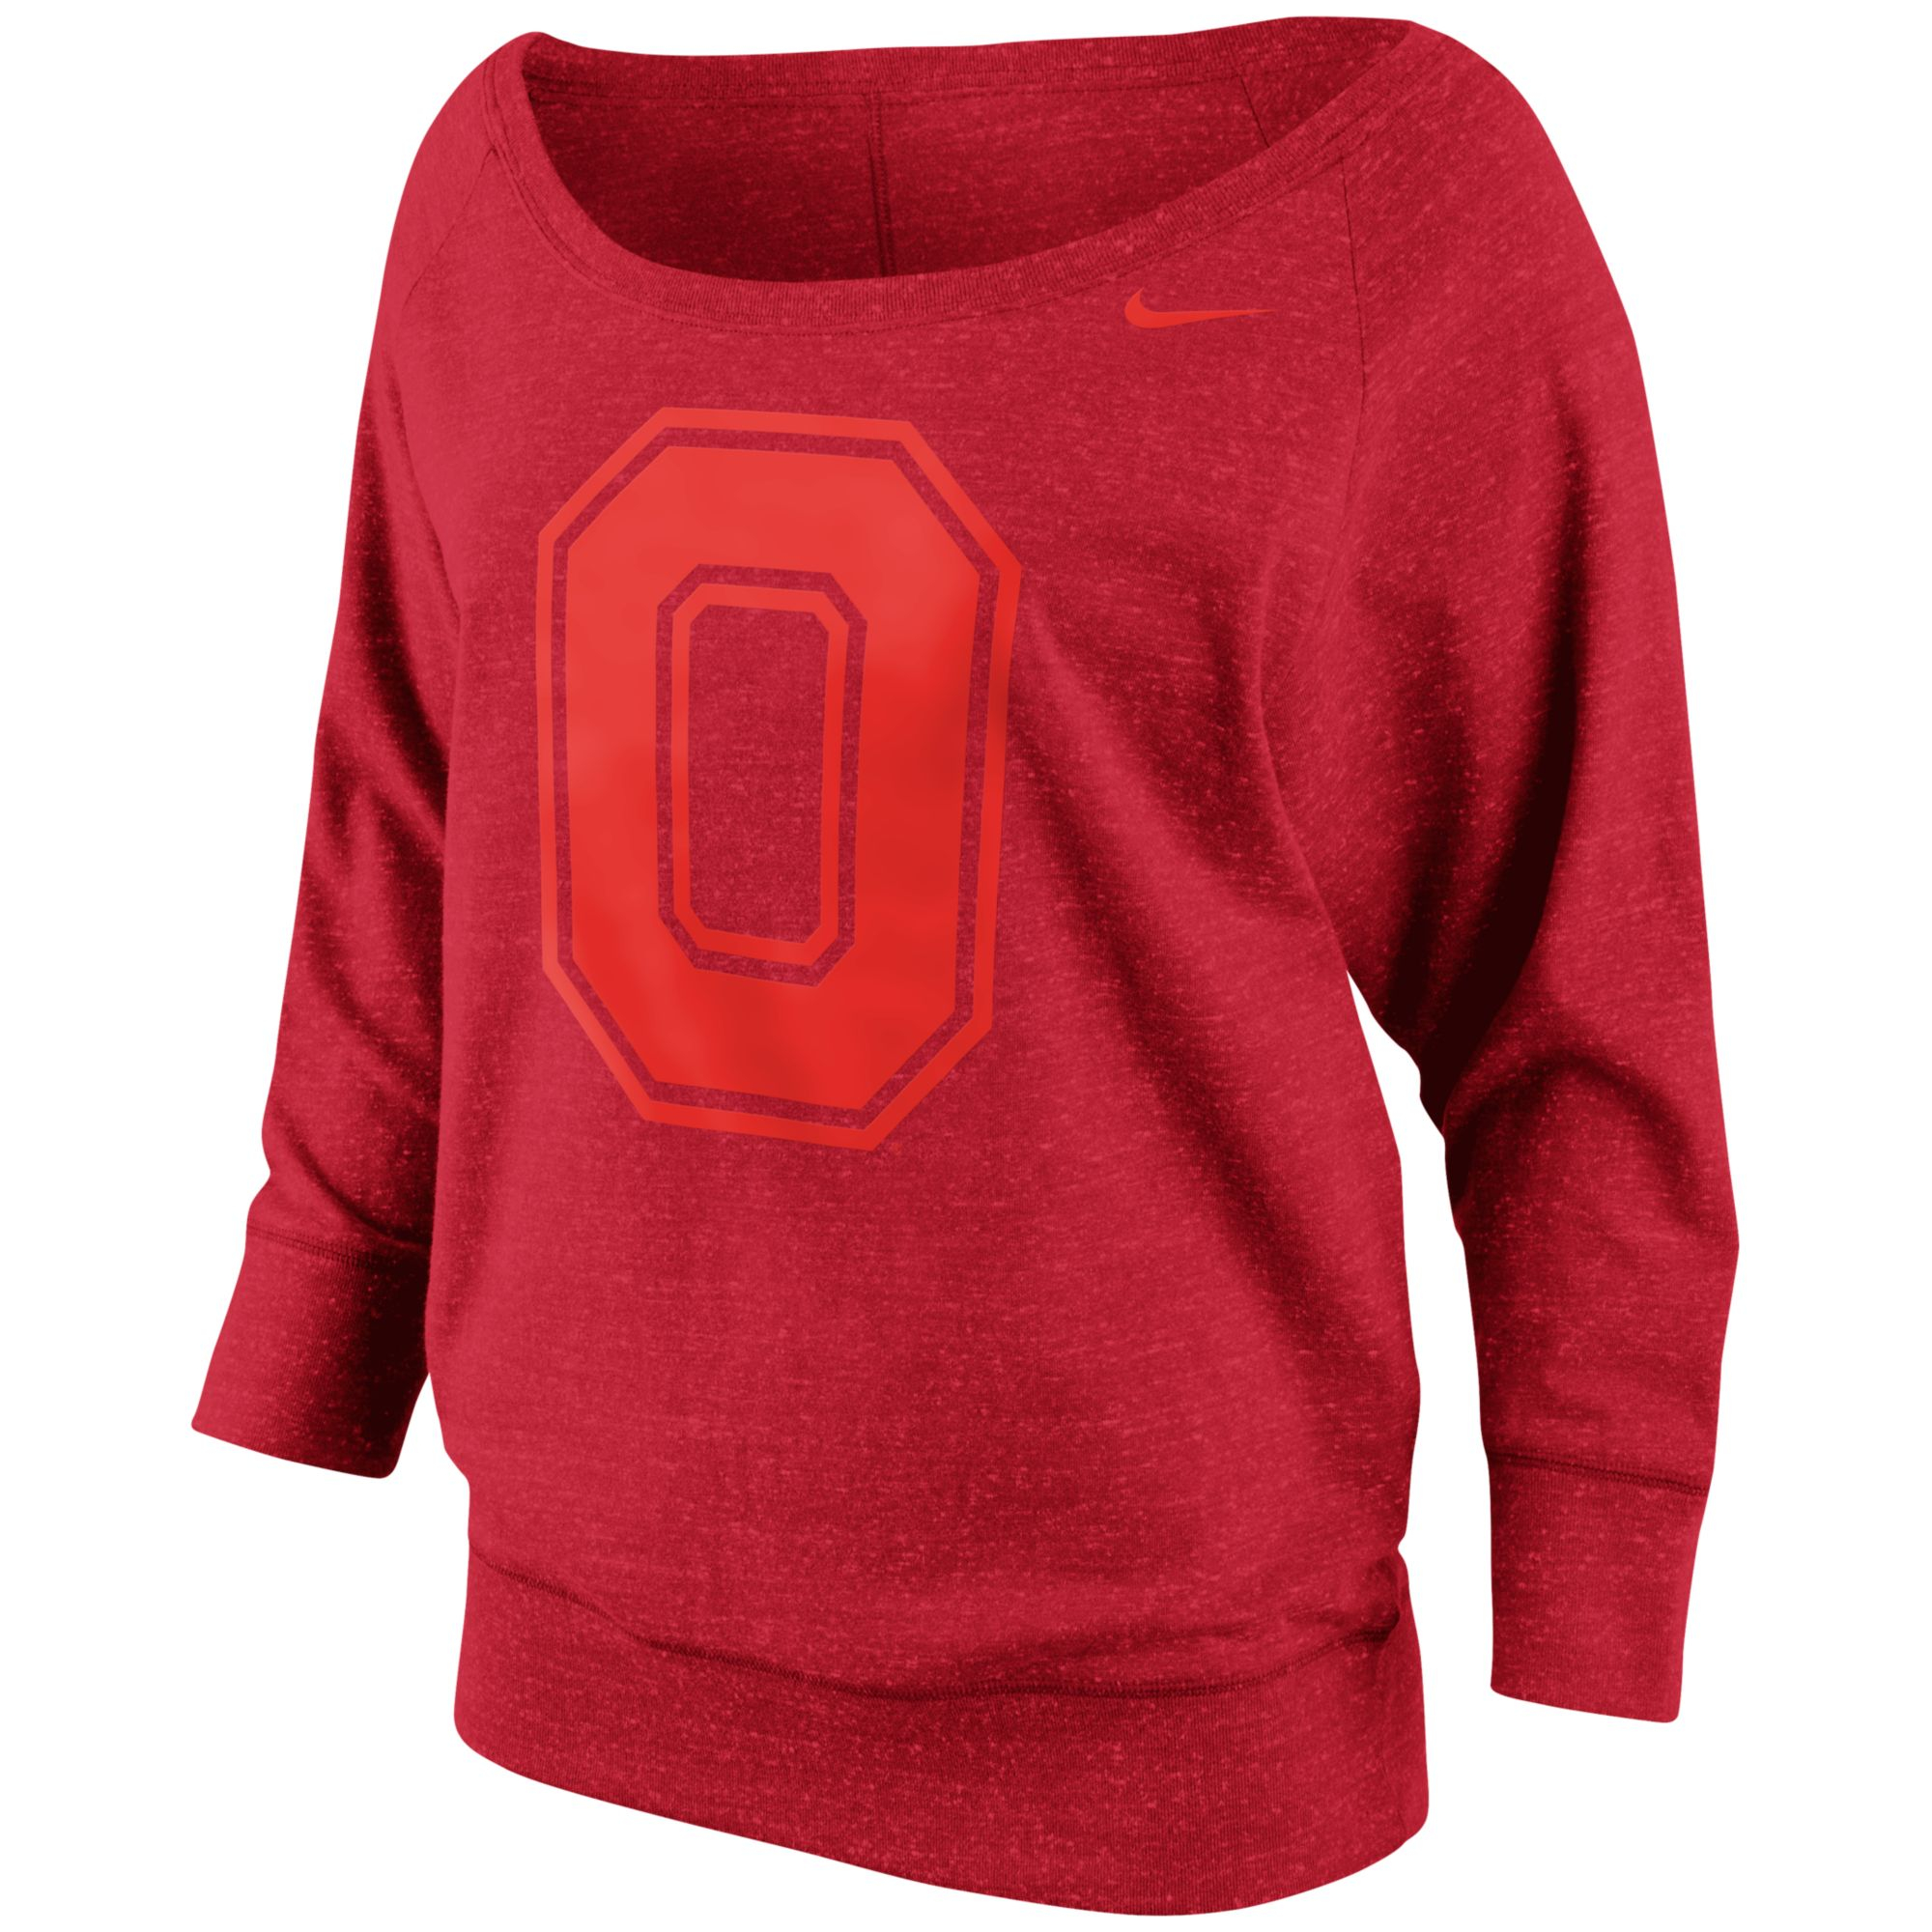 Nike Womens Ohio State Buckeyes Lazy Day Crew Sweatshirt in Red | Lyst